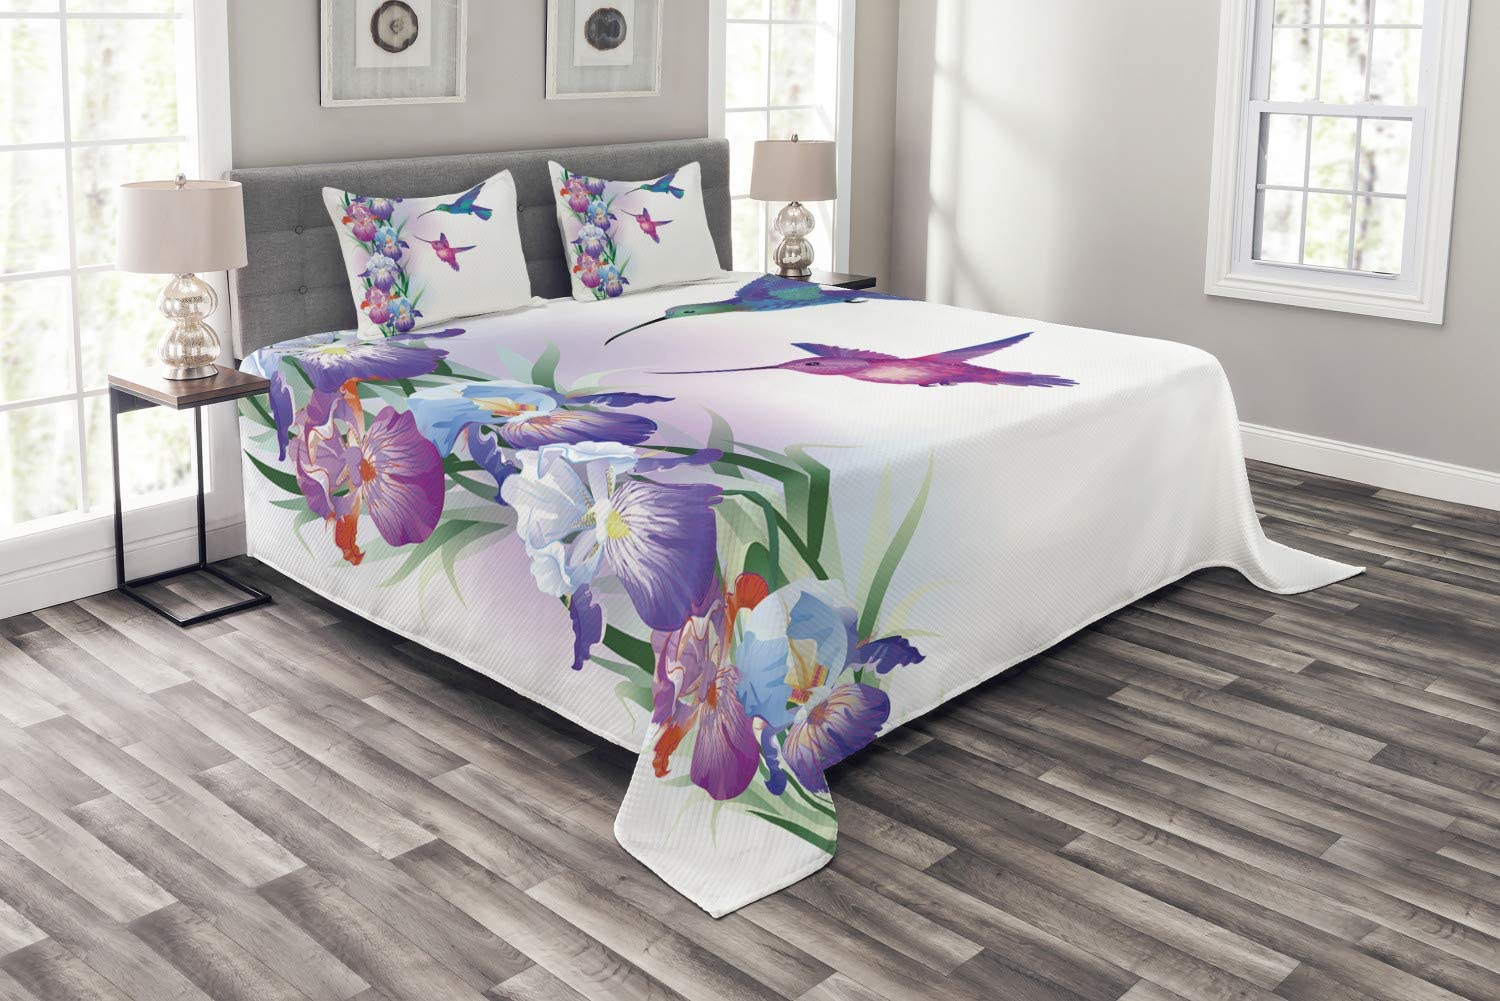 Lunarable Hummingbird Bedspread, Colorful Birds with Foliage and Blossoming Iris Flowers Coming of The Spring, Decorative Quilted 3 Piece Coverlet Set with 2 Pillow Shams, King Size, Pastel Purple